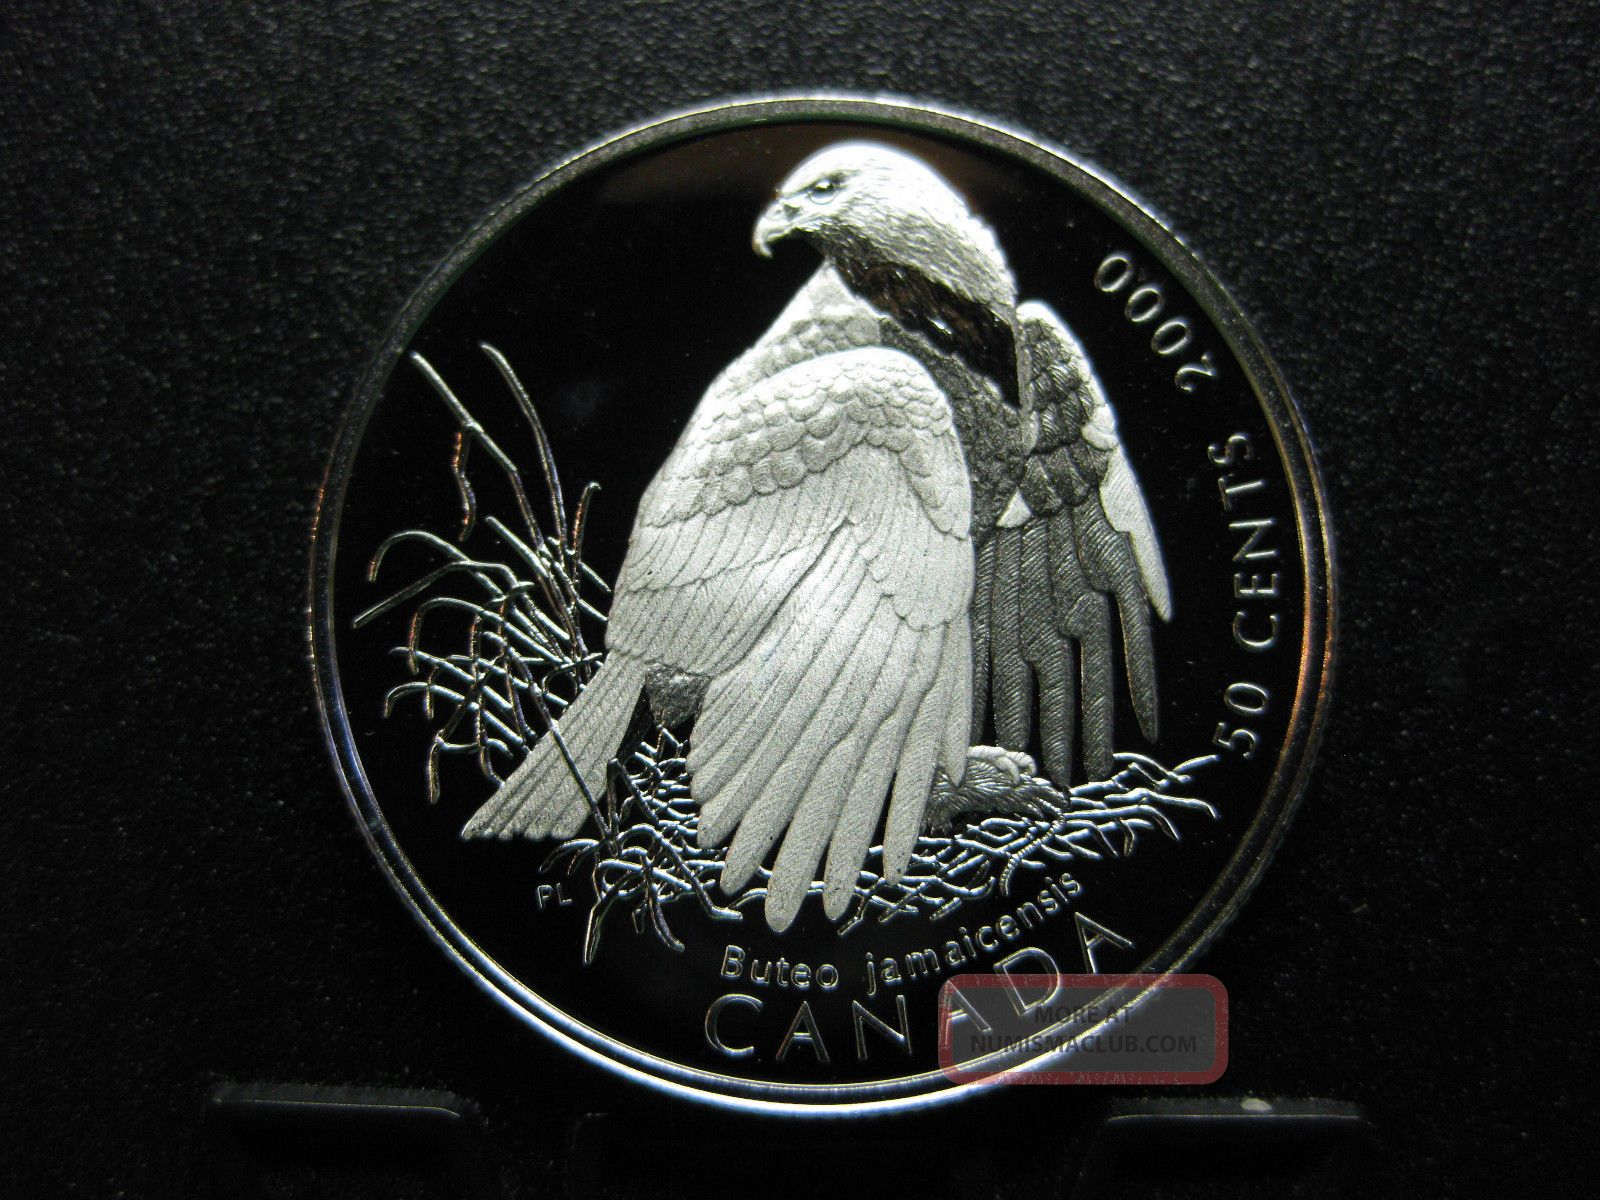 2000 Canada S Birds Of Prey Canada Silver 50 Cent Coin Red Tailed Hawk